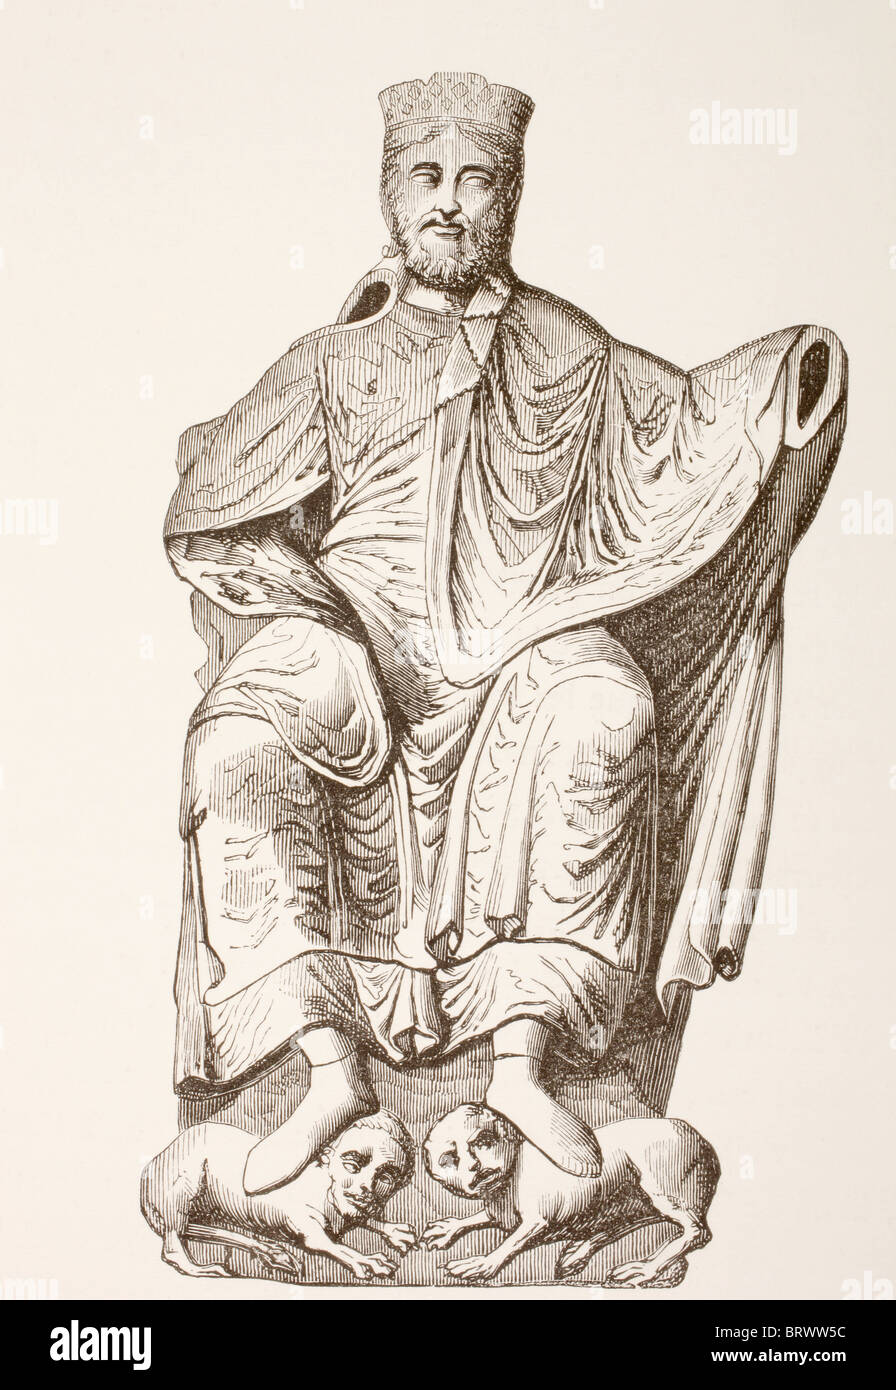 King Dagobert I. After a bas-relief reproducing an ancient statue of the Merovingian king. - Stock Image